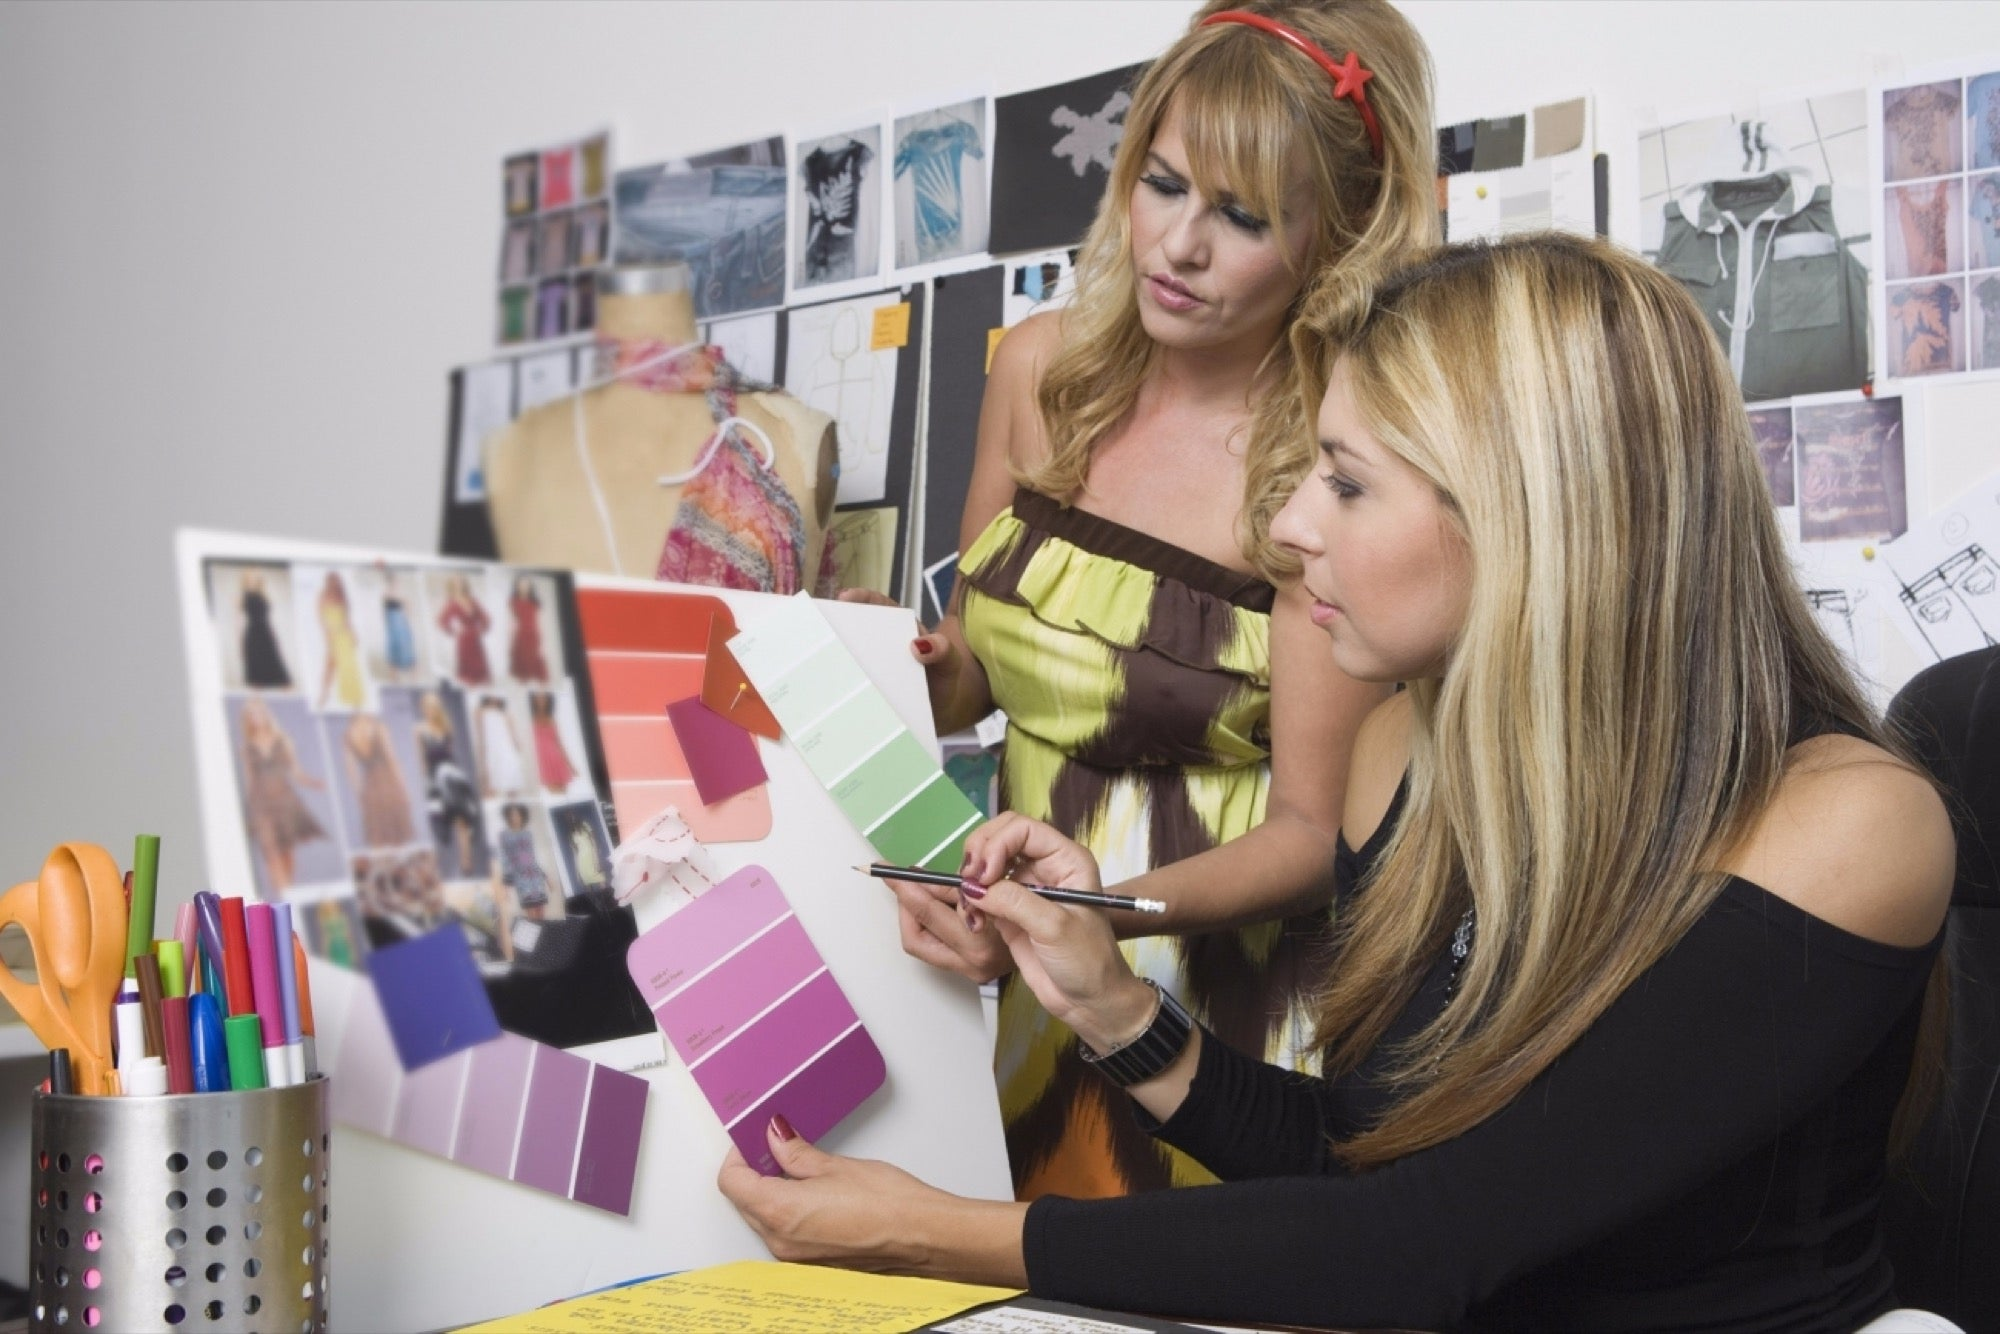 Here S Why Fashion Industry Is A Booming Destination For Non Fashion Background Entrepreneurs